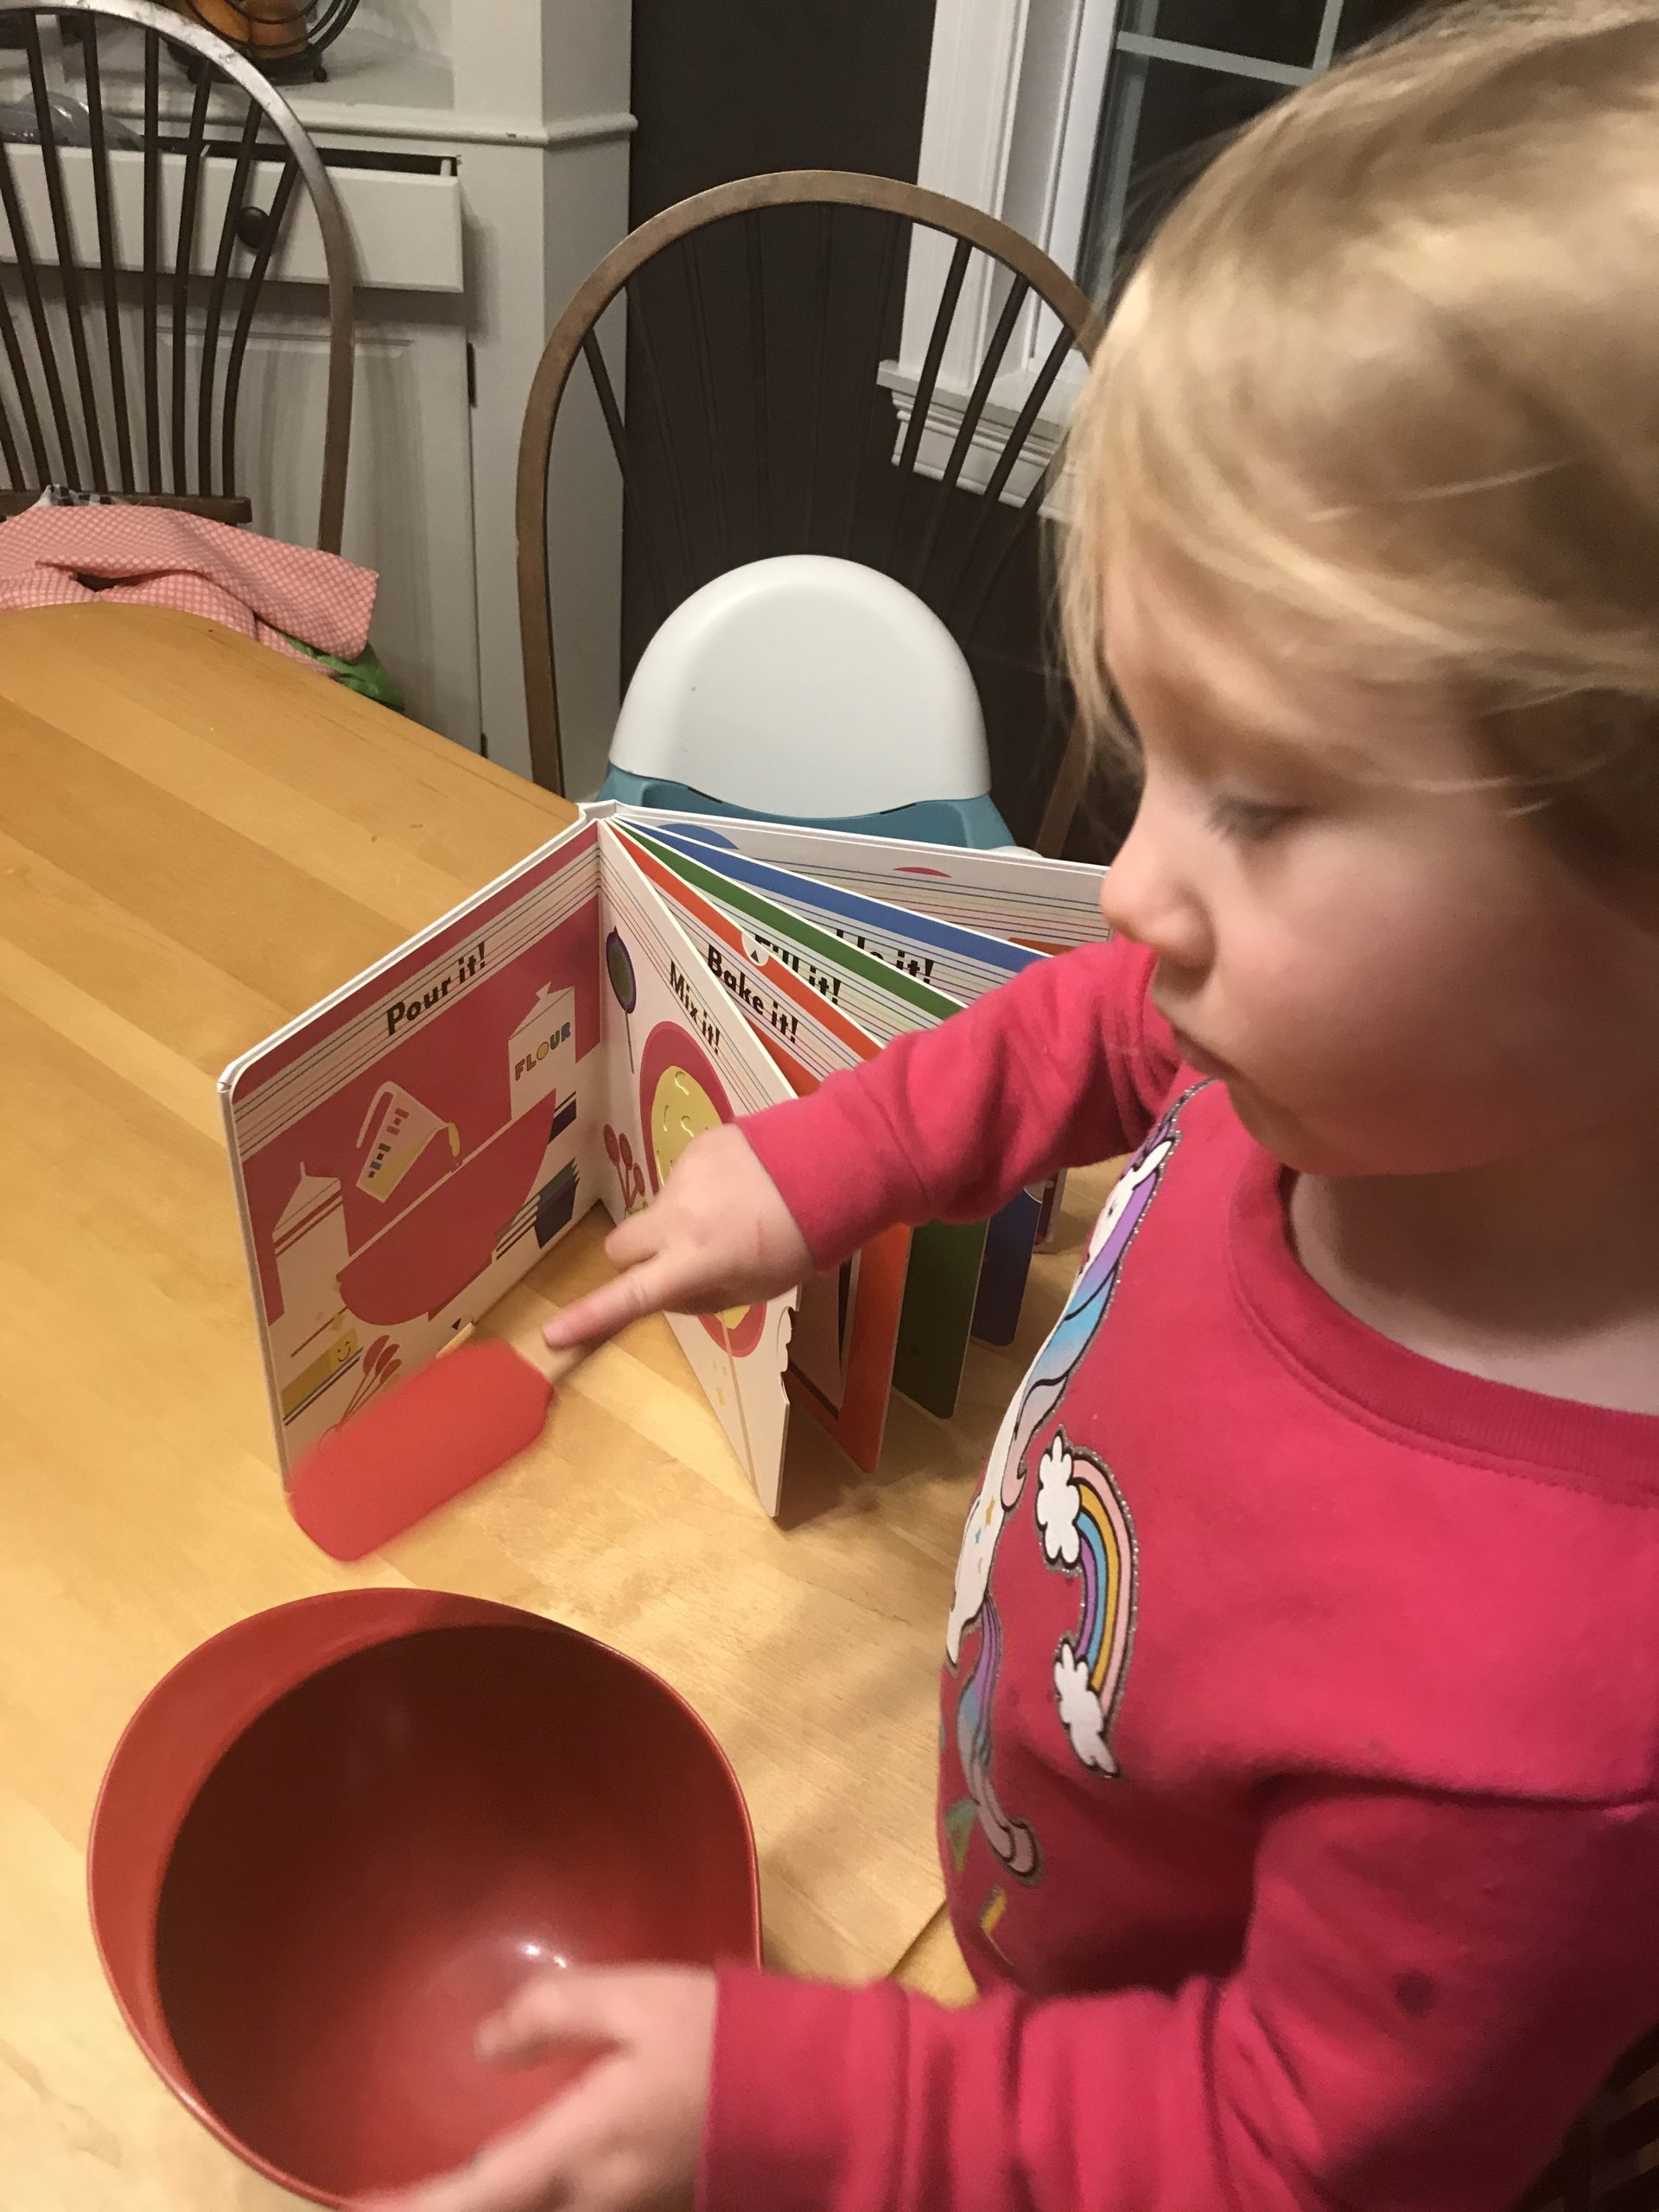 child mixing with Bake A Rainbow Cake! by Amriah Kassem